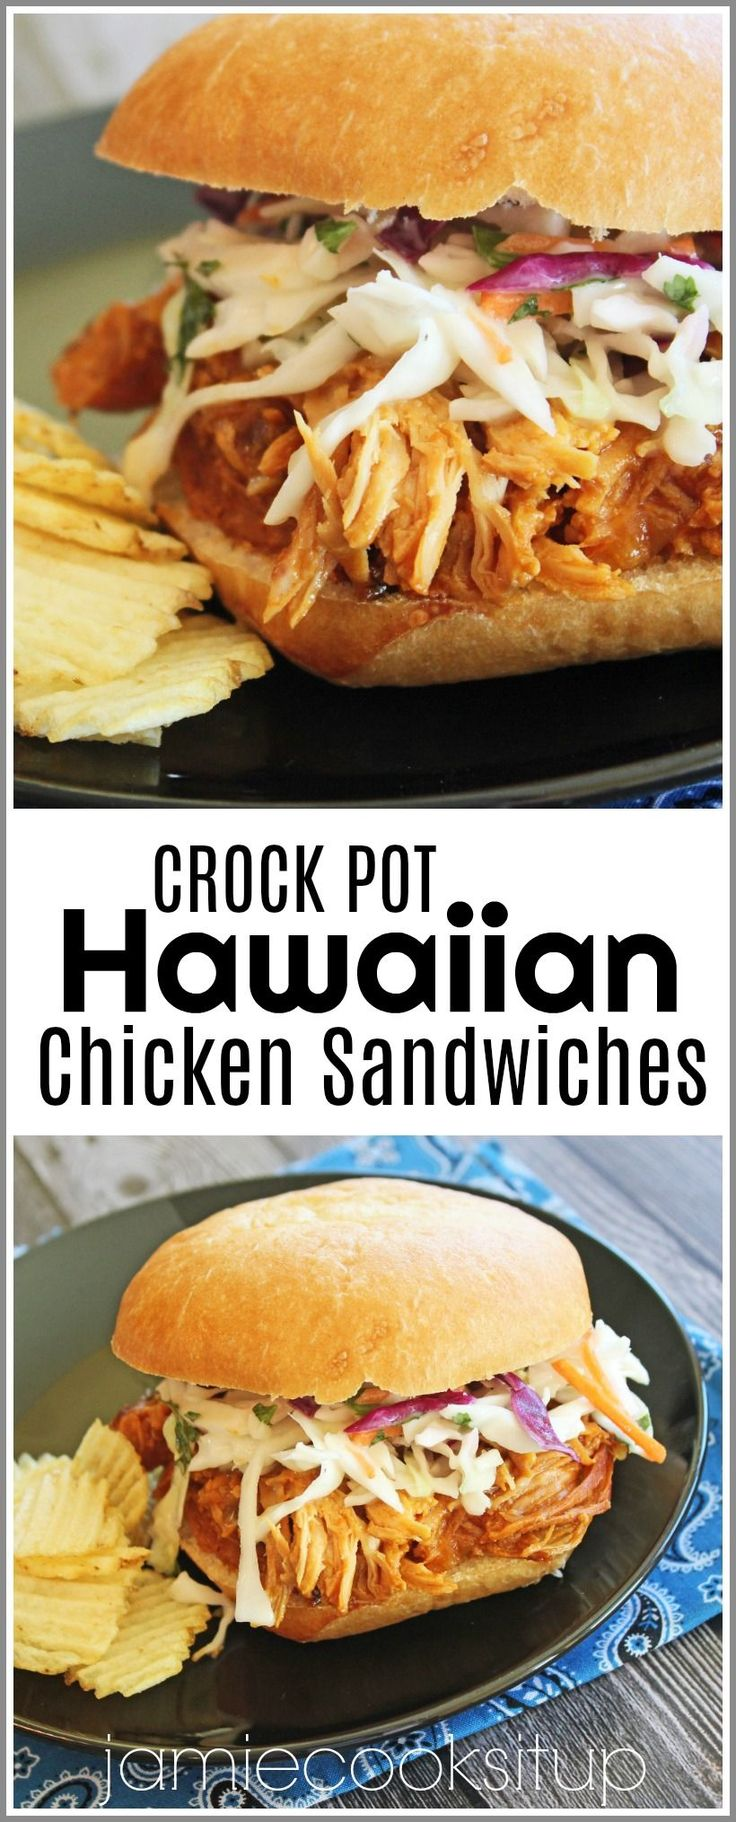 I have a wonderfully easy and fabulous tasting crock pot recipe for you all today! These sandwiches are seriously super delicious. The chicken is slow cooked in a wonderful sweet and sour, Hawaiian…